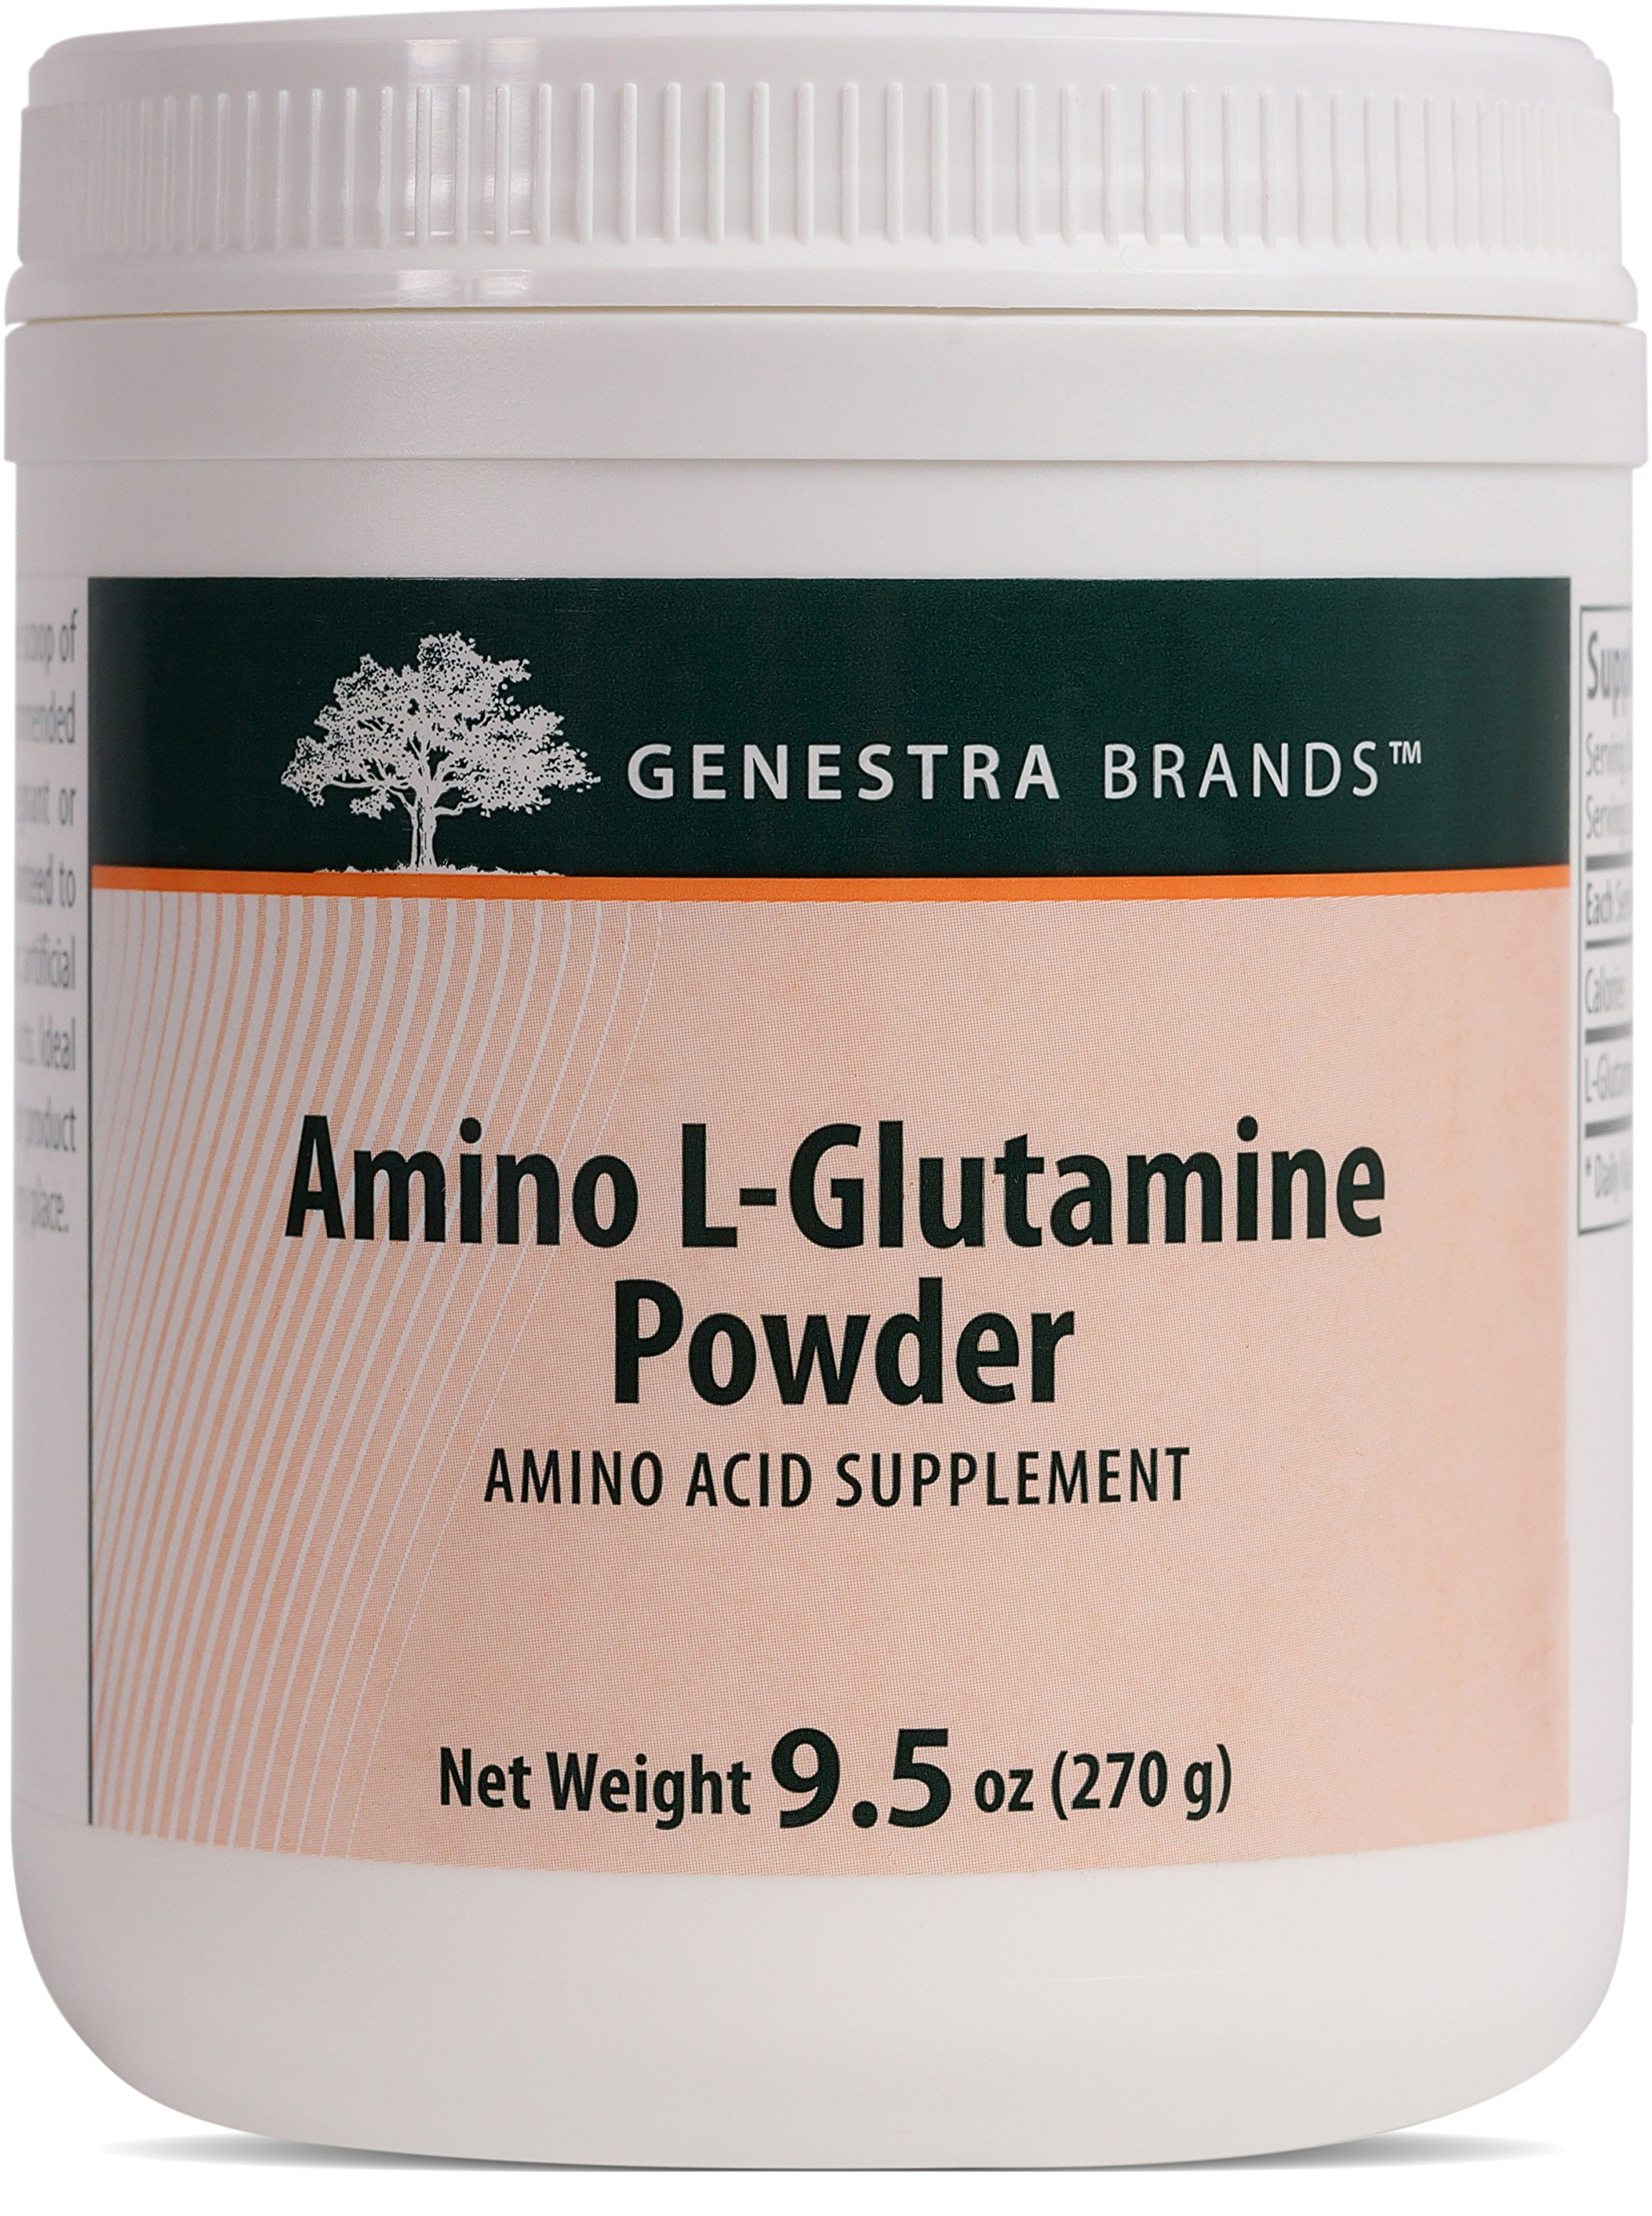 Genestra Brands - Amino L-Glutamine Powder - Amino Acid Supplement for GI and Immune Health* - 9.5 oz.